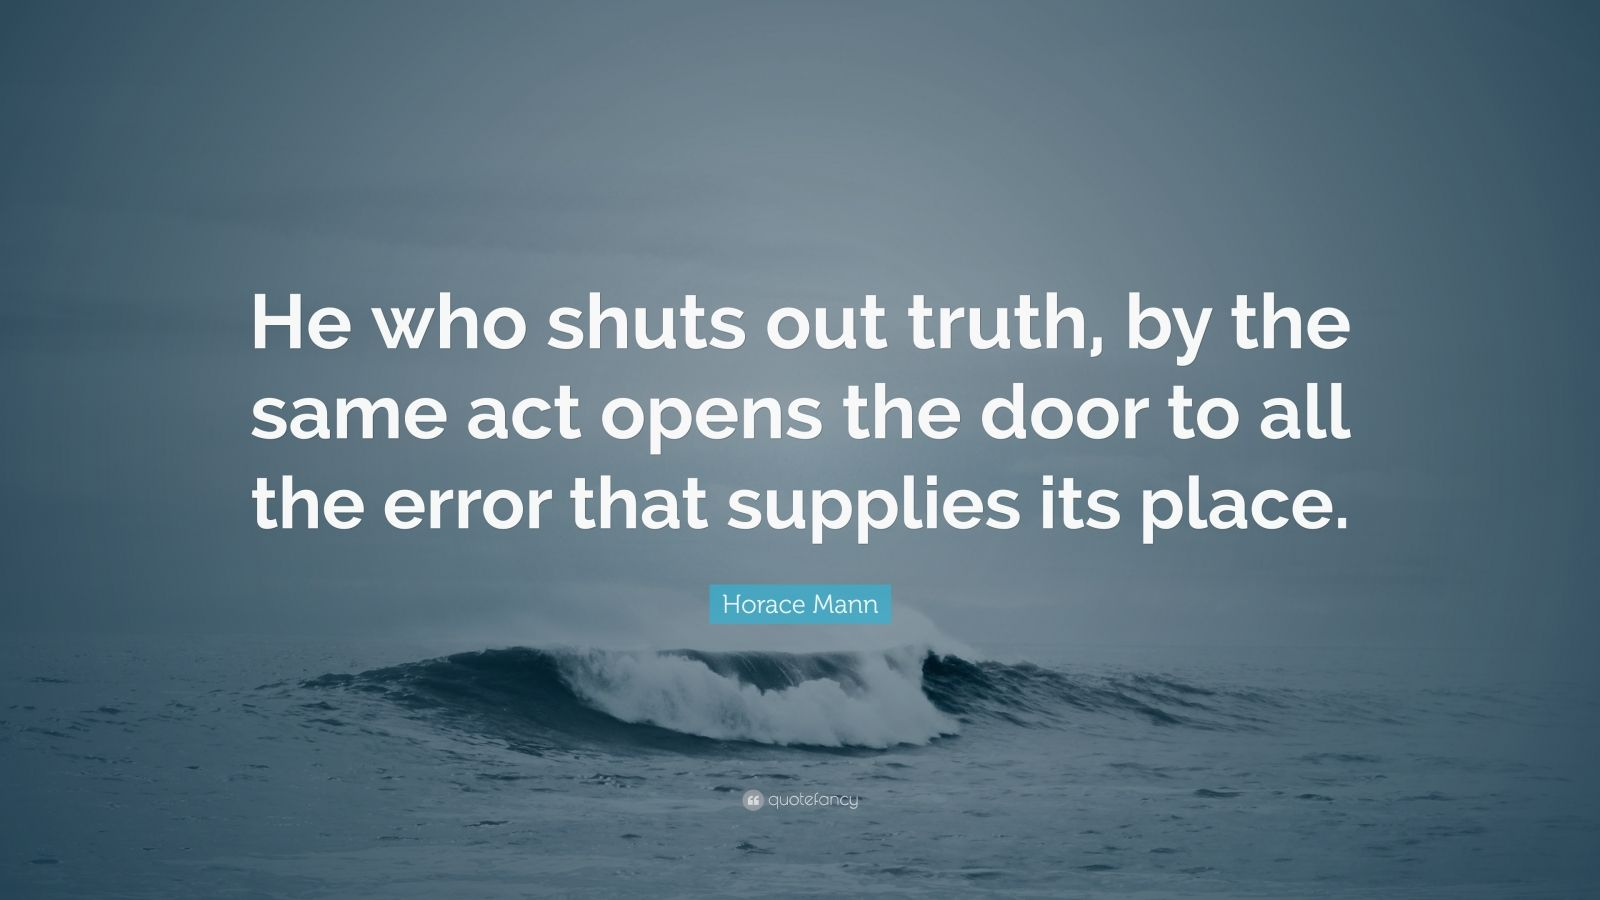 """Horace Mann Quote: """"He who shuts out truth, by the same act opens the door to all the error that supplies its place."""""""